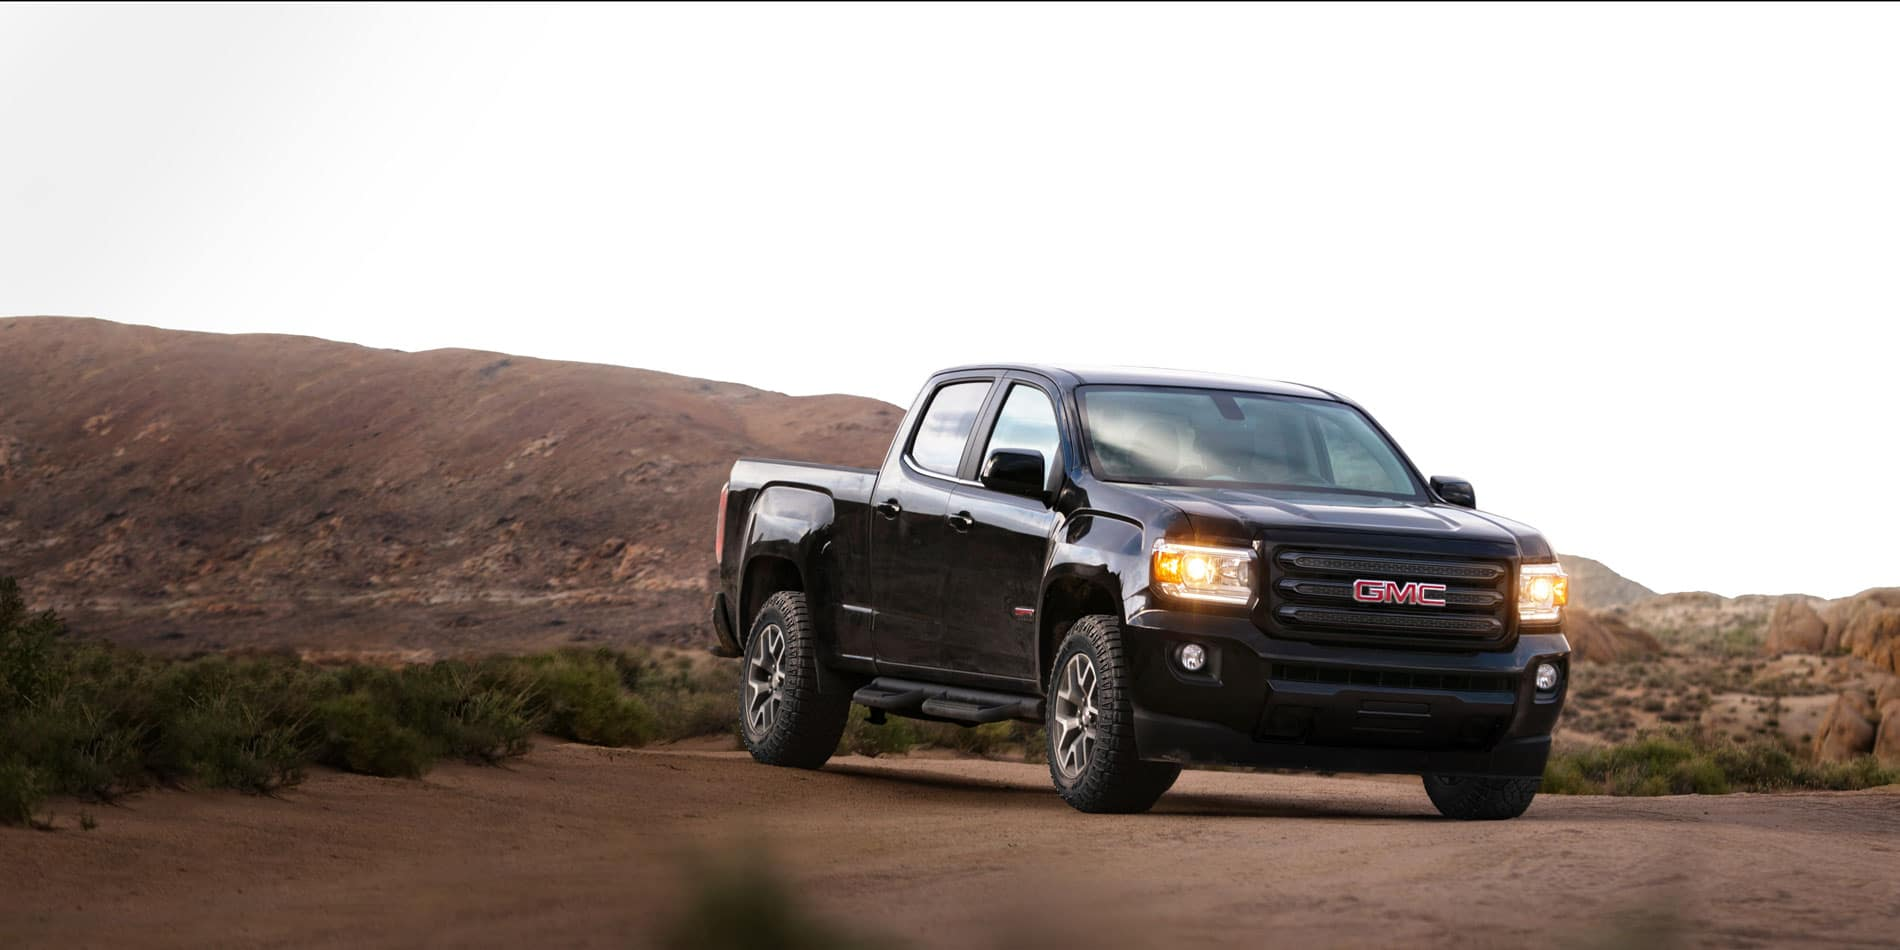 Gmc Canyon Vs Ford Ranger Blast From The Past Rivalry Starter Motor Wiring Harness Takes On Looks Of Its Big Brother Sierra 1500 With Flat Front End Sharp Shoulders And Blocky Overall Styling